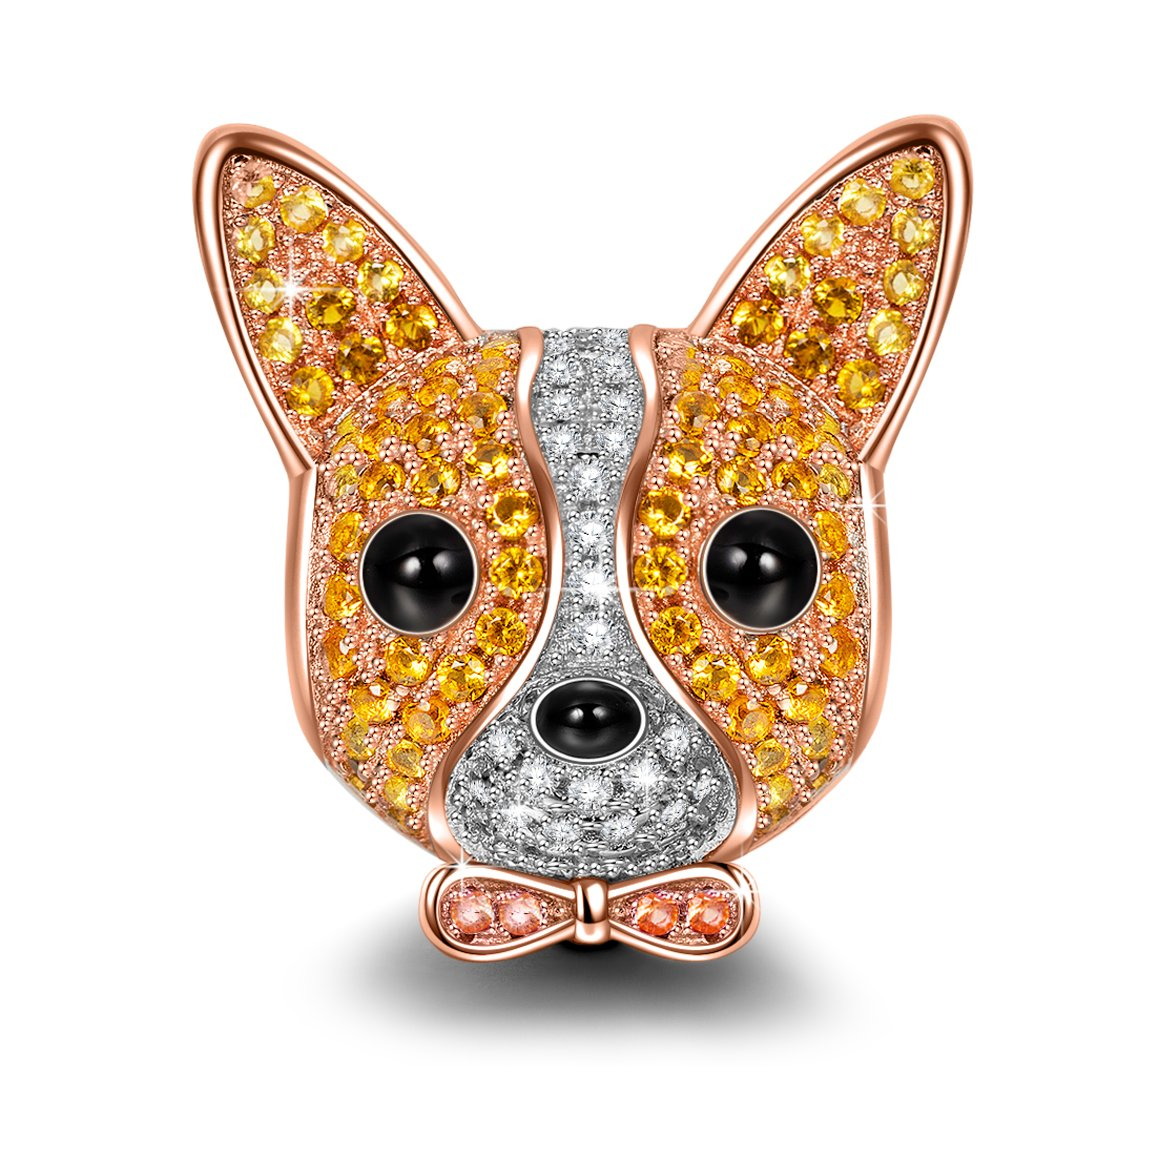 NINAQUEEN Chihuahua Bolt 925 Sterling Silver Charm Rose-Gold Plated Puppy Dog Charms ♥Happy Family♥Animal Bead with 5A Cubic Zirconias